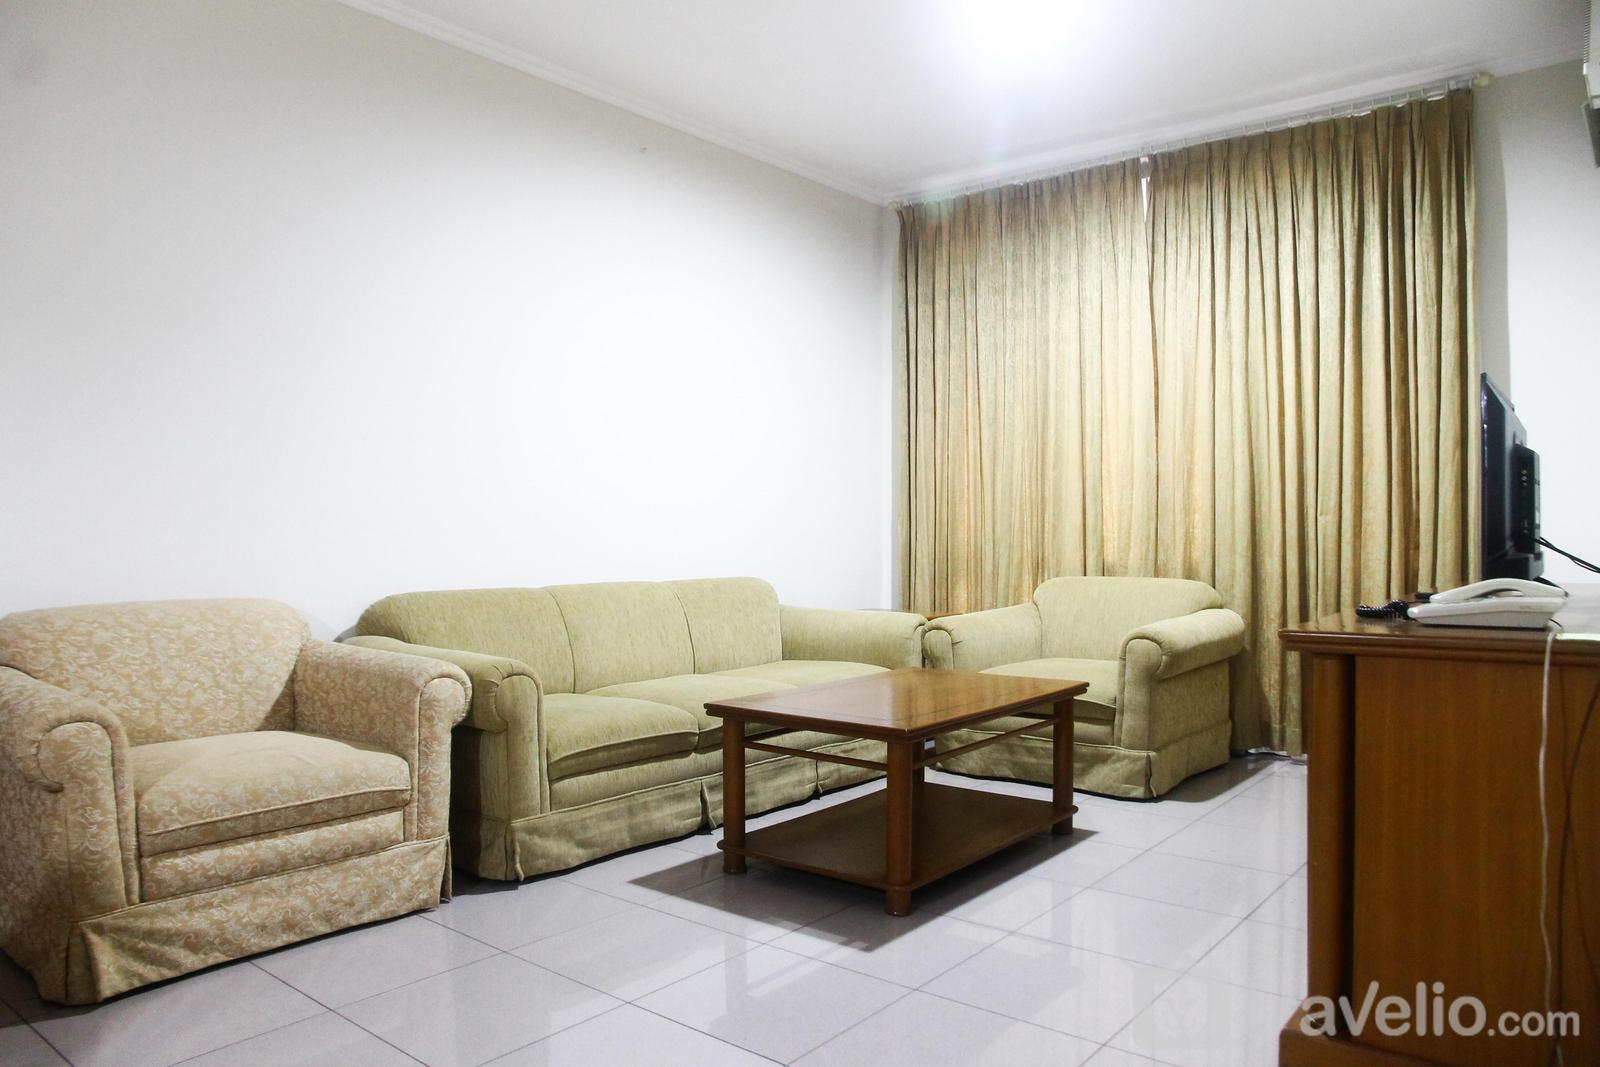 Pondok Club Villa Apartment - Comfortable and Homey 2BR Pondok Klub Villa Apartment By Travelio